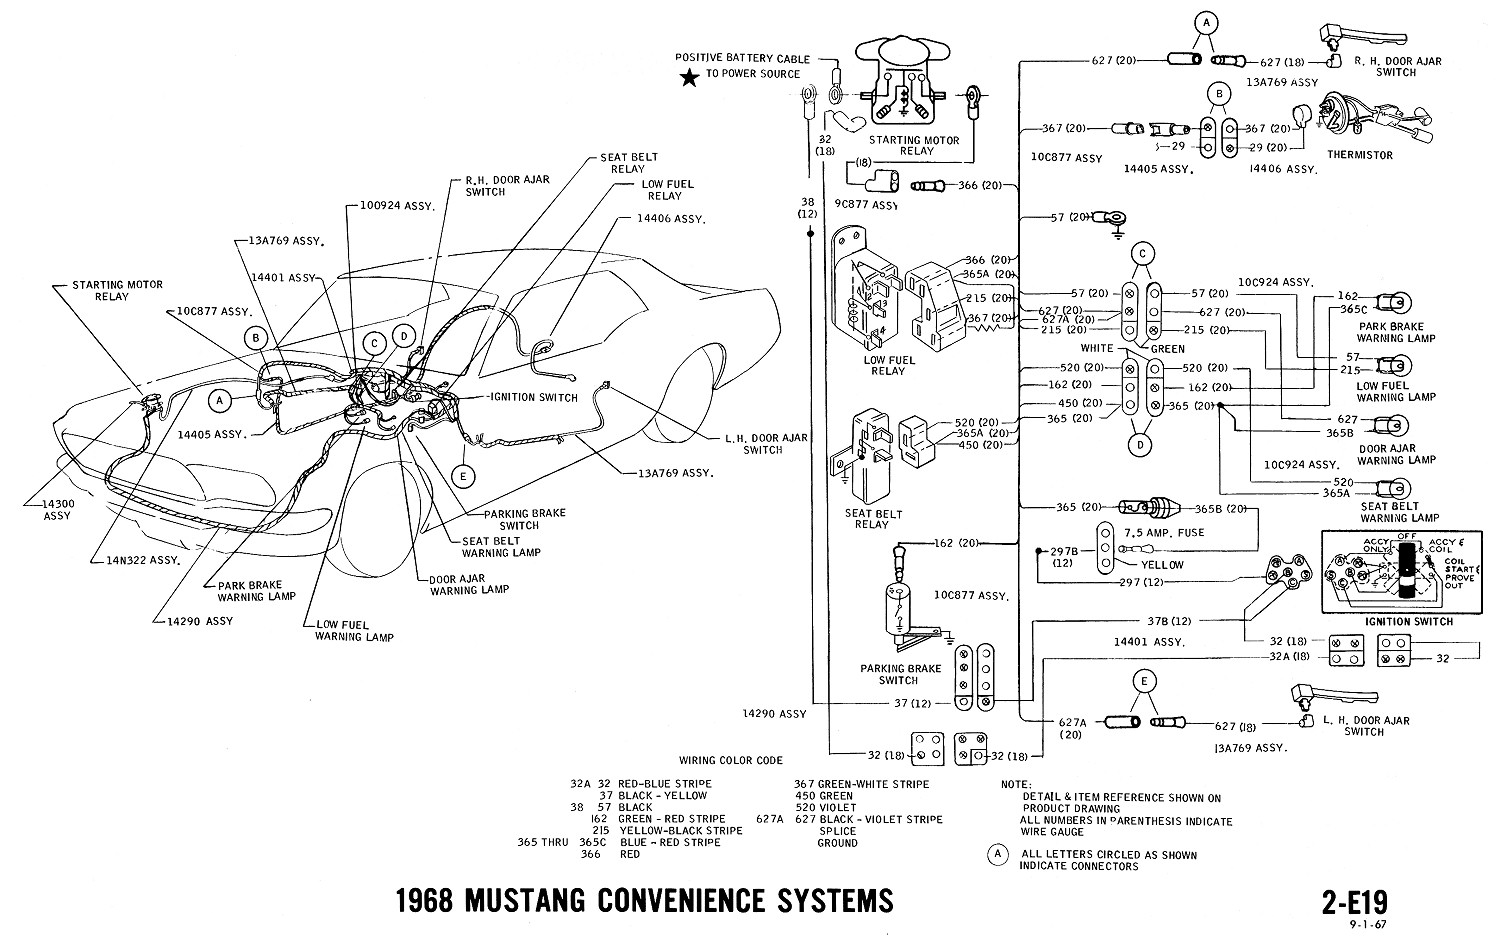 1968 Mustang Wiring Diagrams And Vacuum Schematics Average Joe Basic Brake Light Diagram Convenience Systems